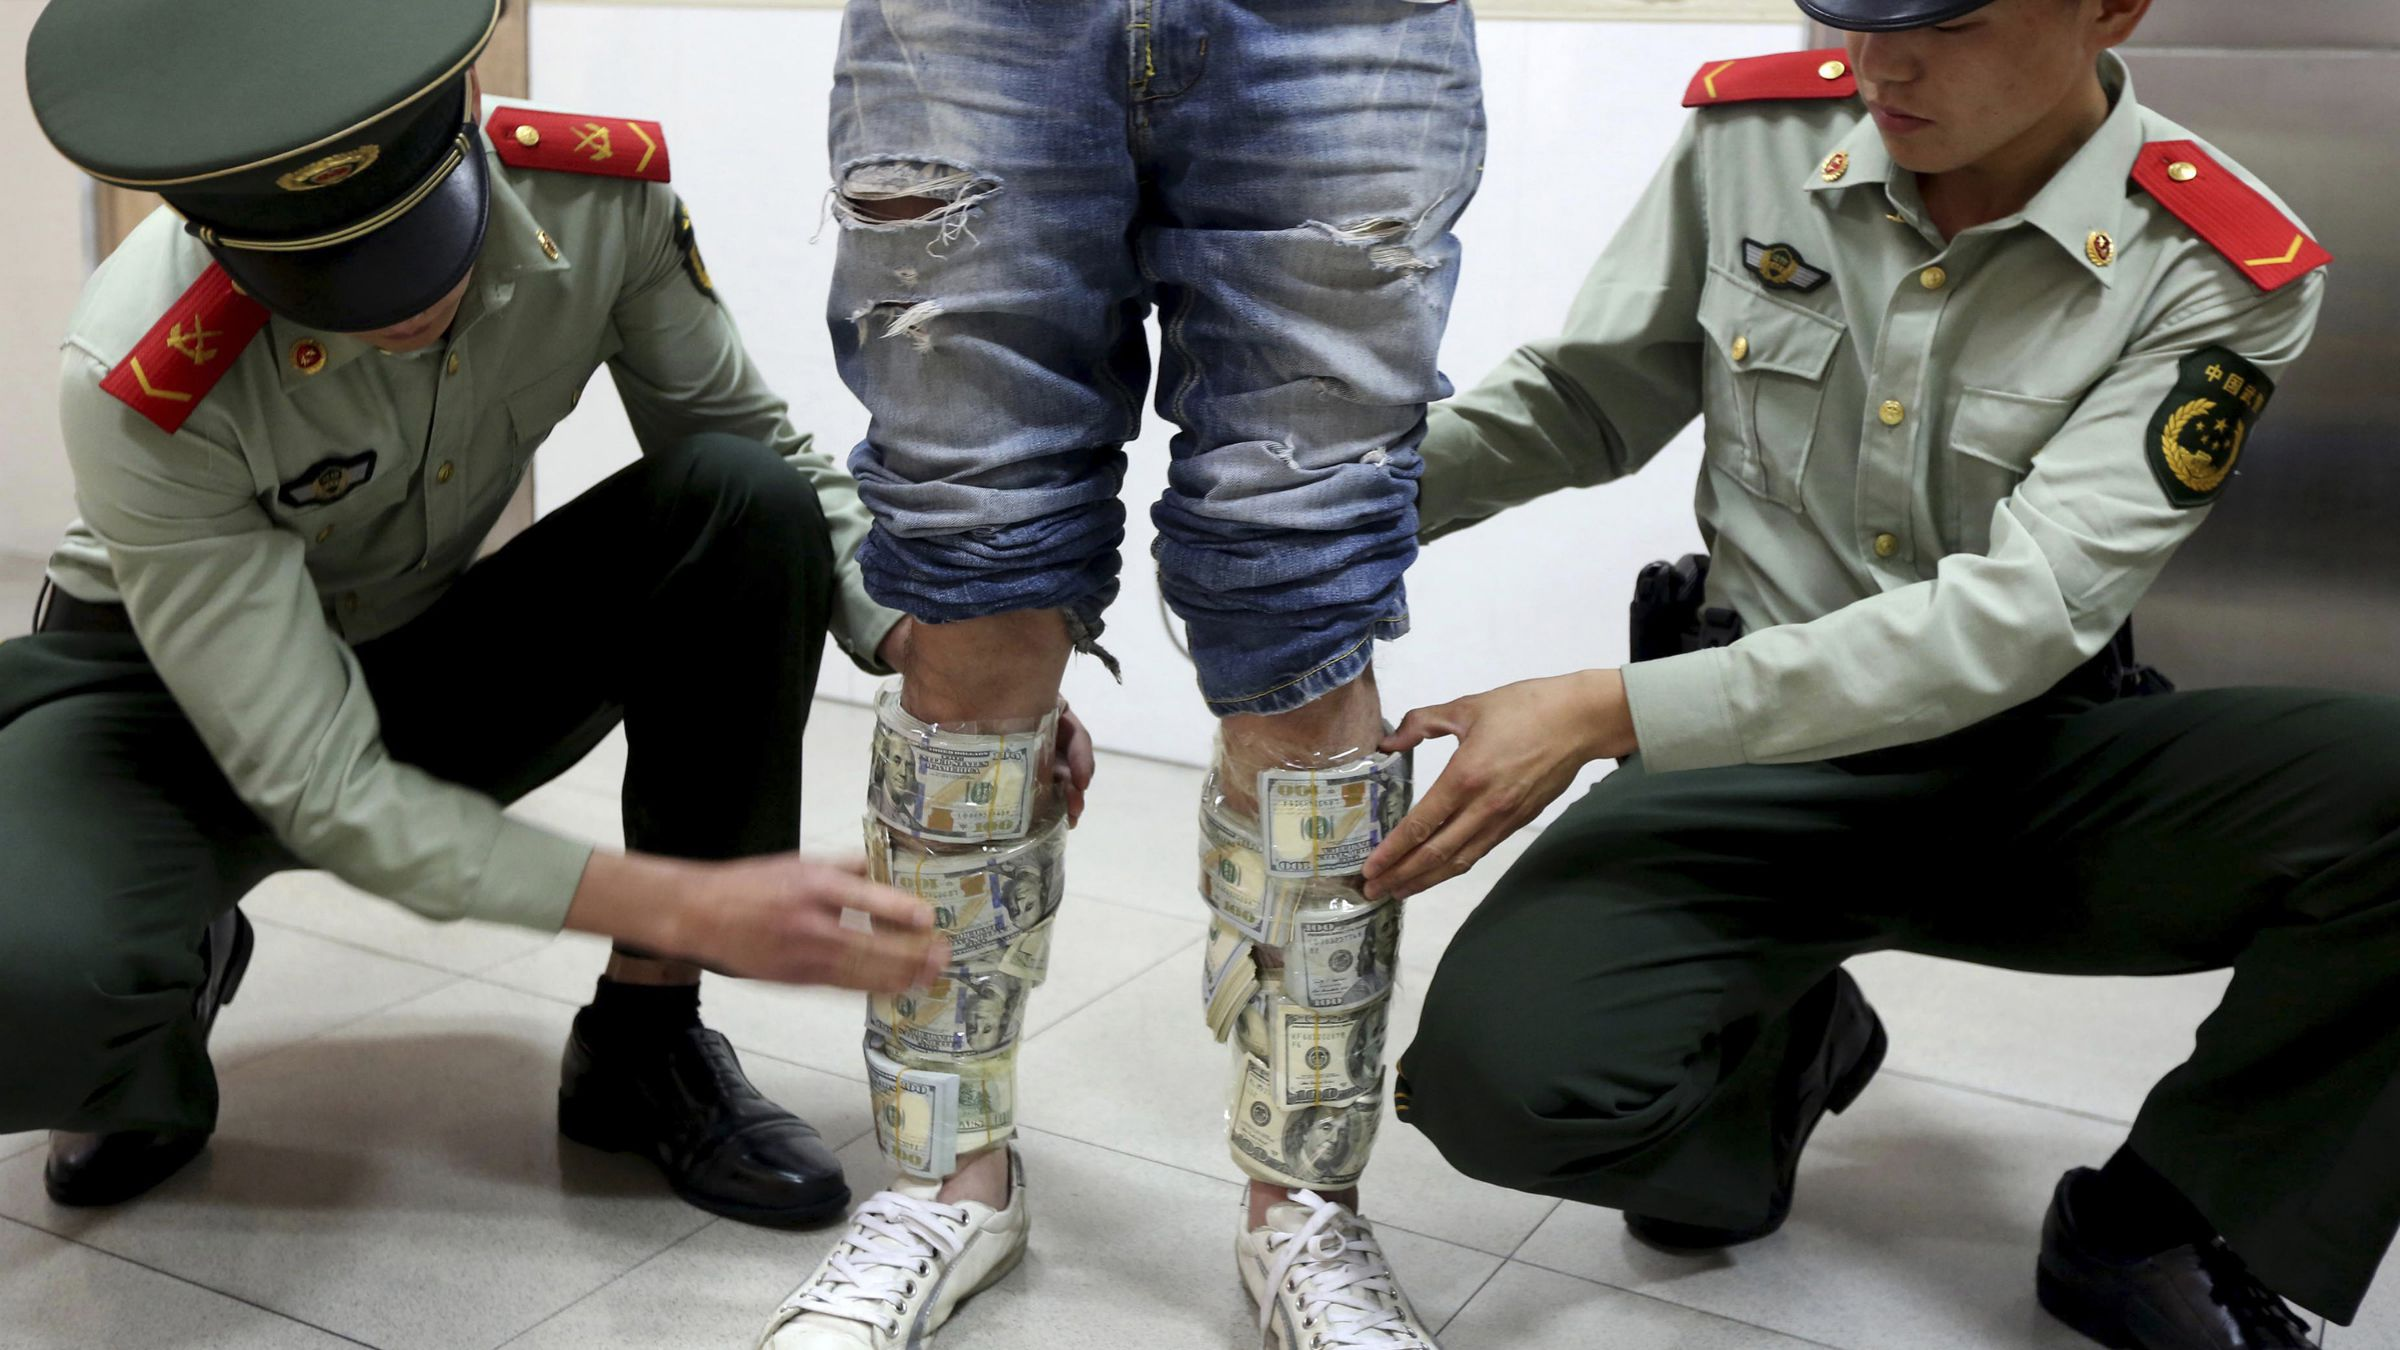 china dollar debt Paramilitary policemen take off U.S. dollars strapped around a man's legs, at the border of Hong Kong and Shenzhen, Guangdong province, April 24, 2014. According to local media, the man was found trying to smuggle in total US$580,000 from the mainland to Hong Kong. Picture taken April 24, 2014. REUTERS/China Daily